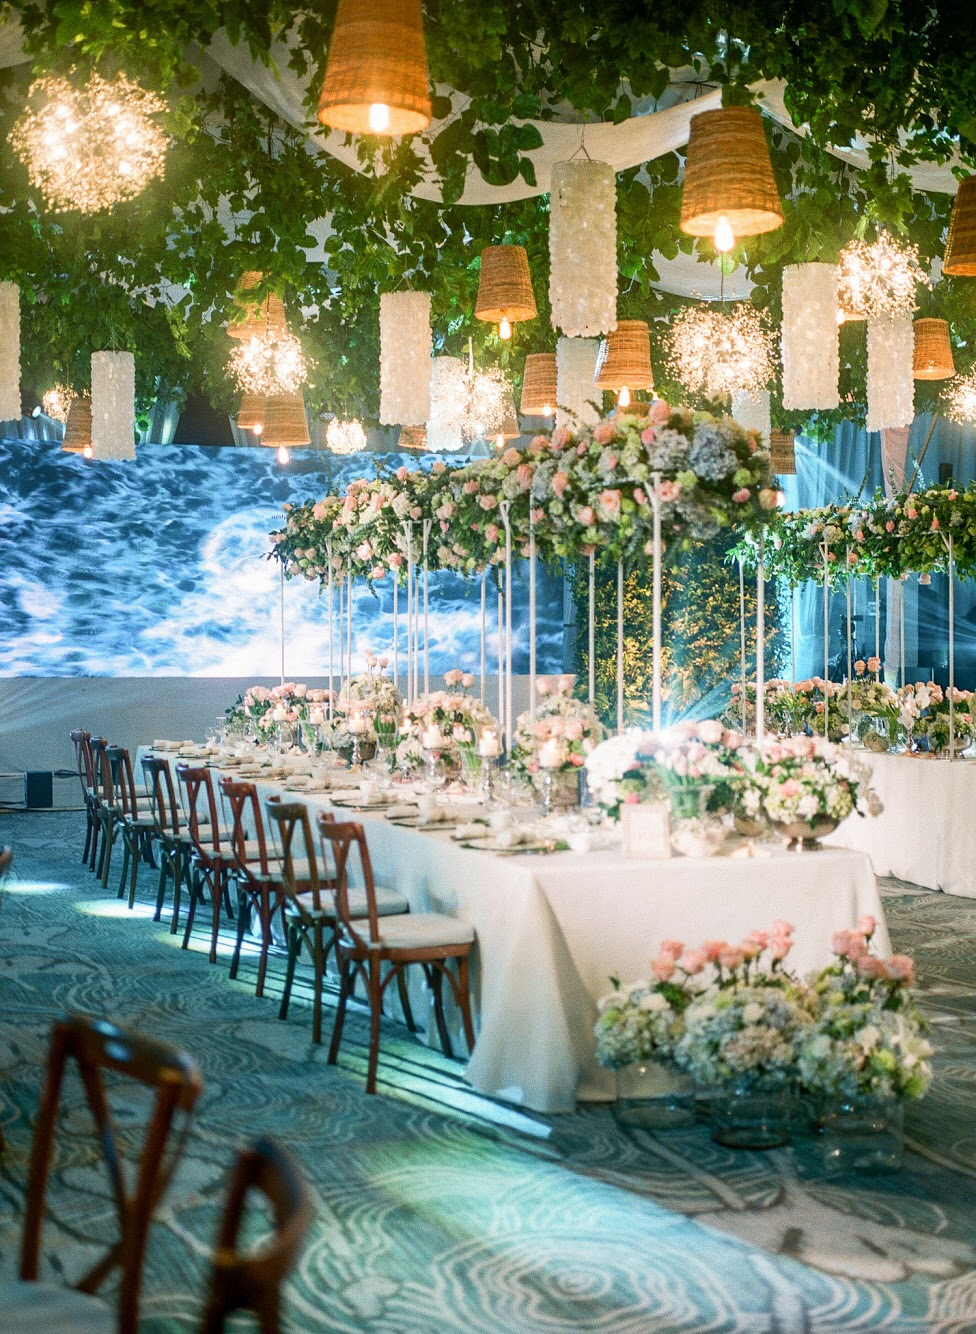 This fresh yet elegant beach formal setup by Dave Sandoval was just perfect, and the visuals of lapping waves took it a notch higher!